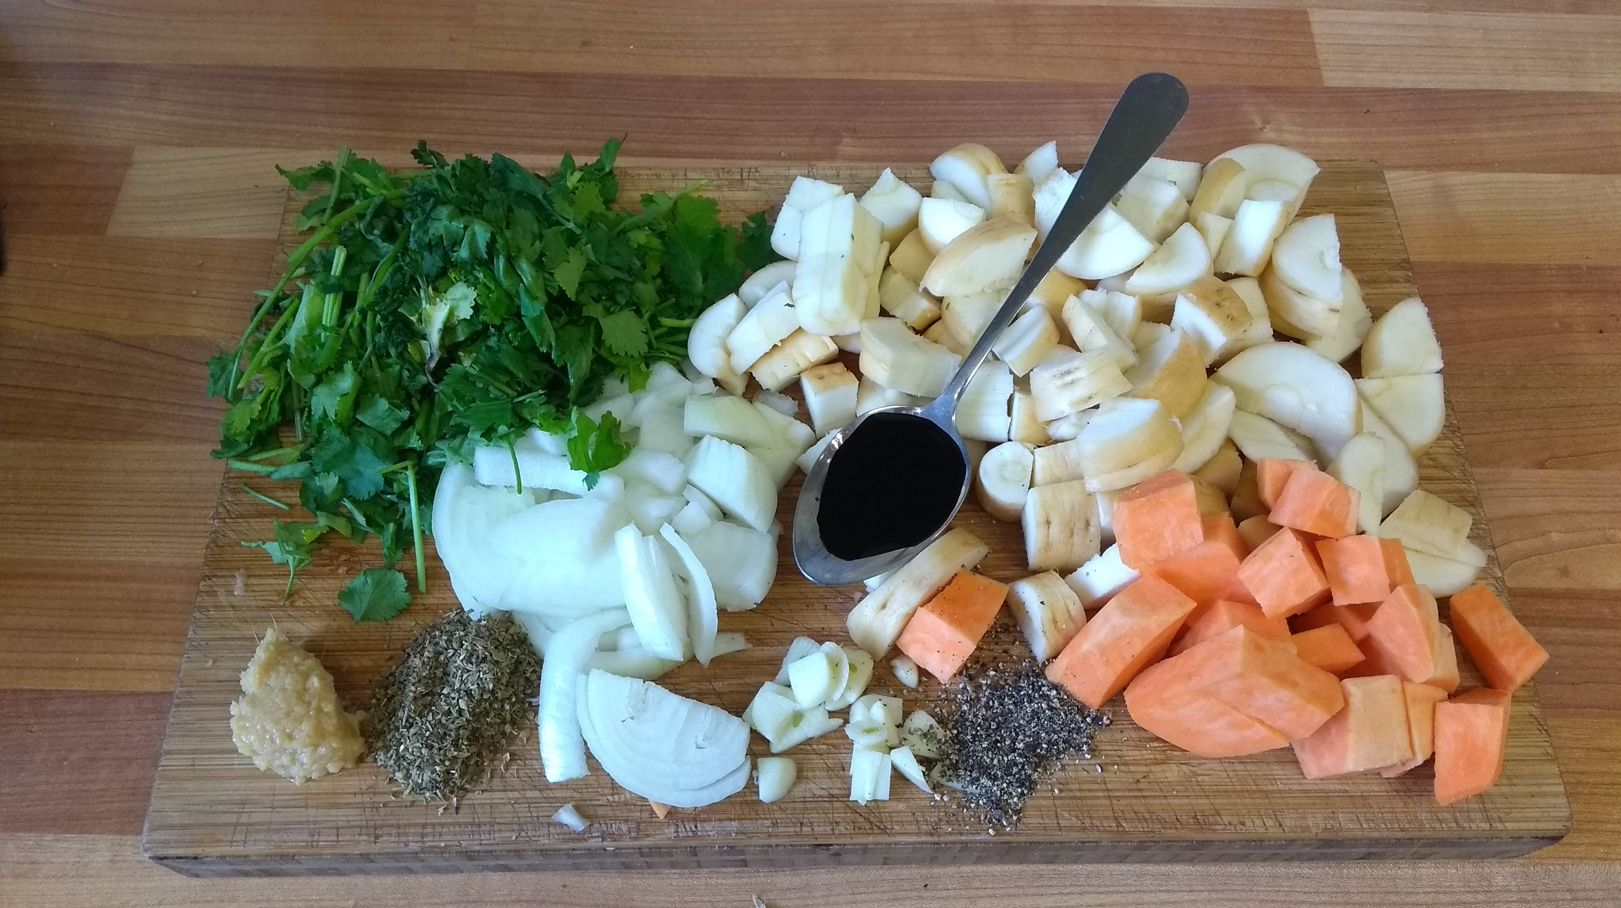 Parsnip soup ingredients